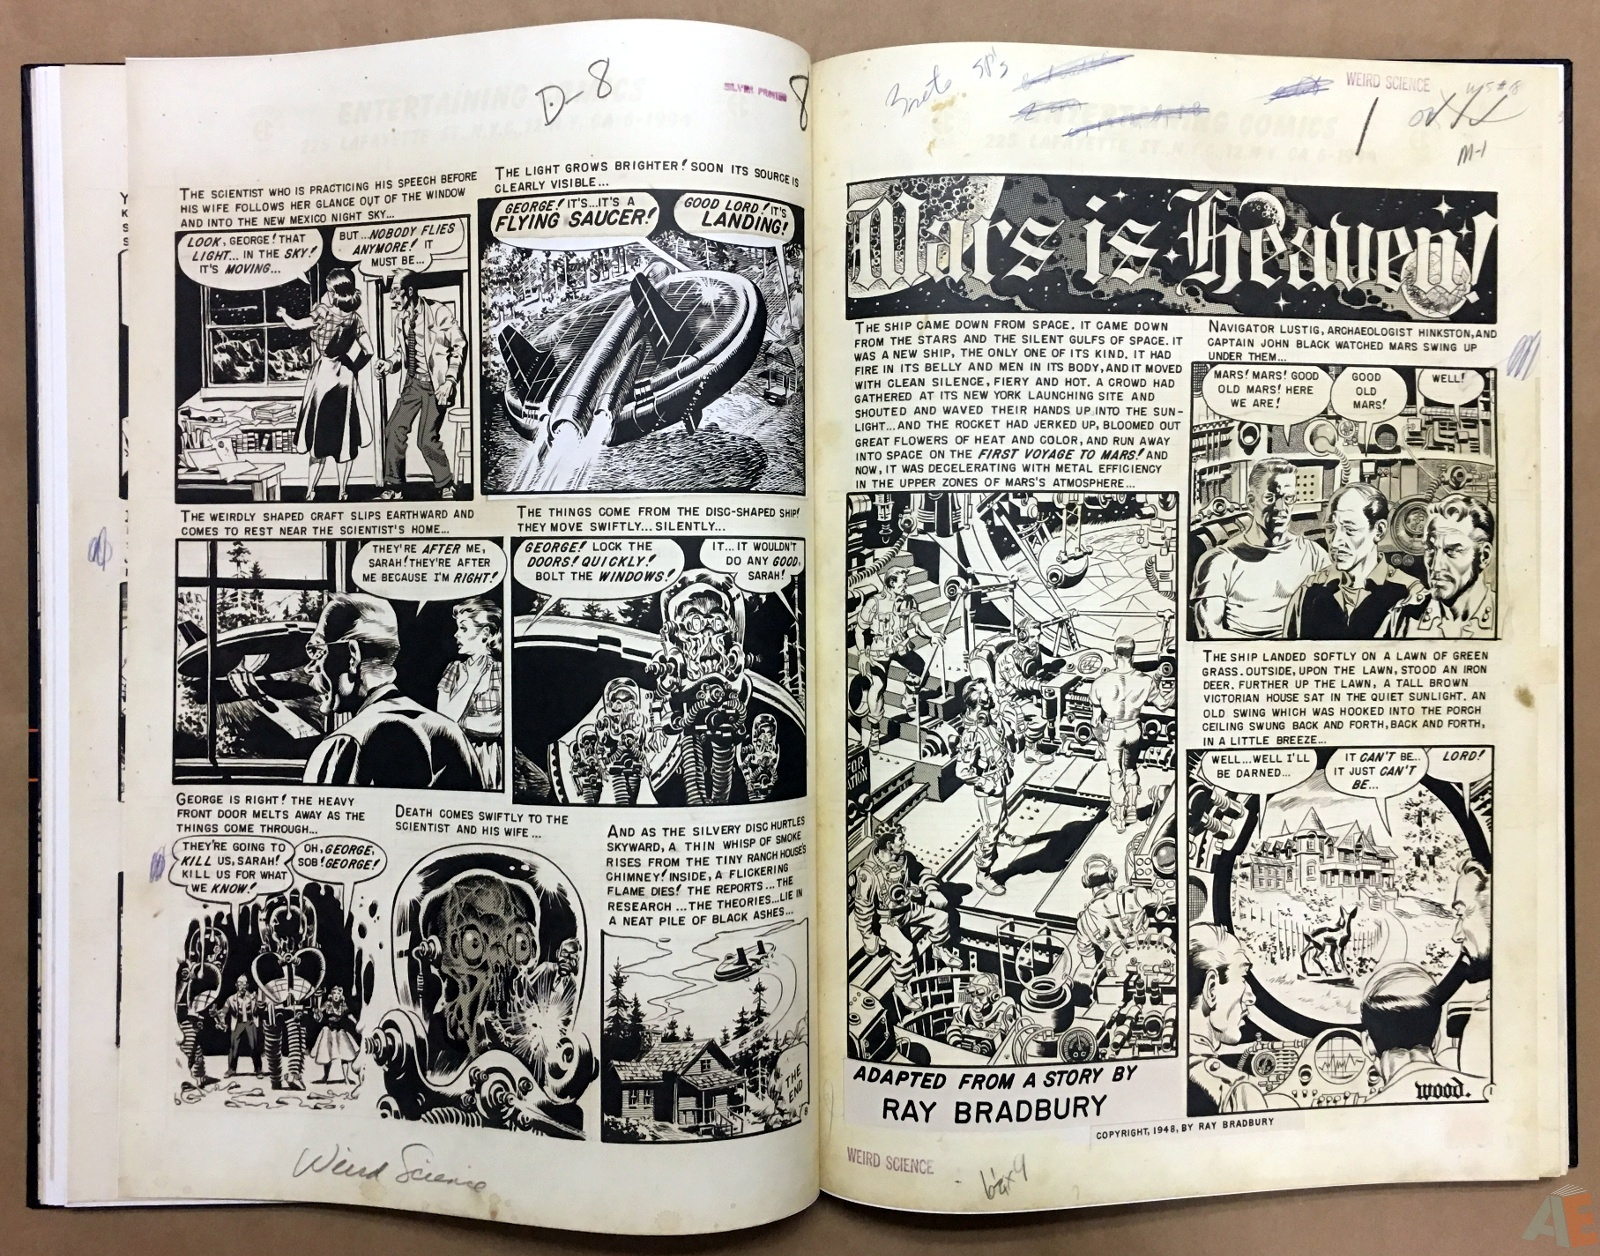 Wally Wood's EC Stories Artist's Edition 16